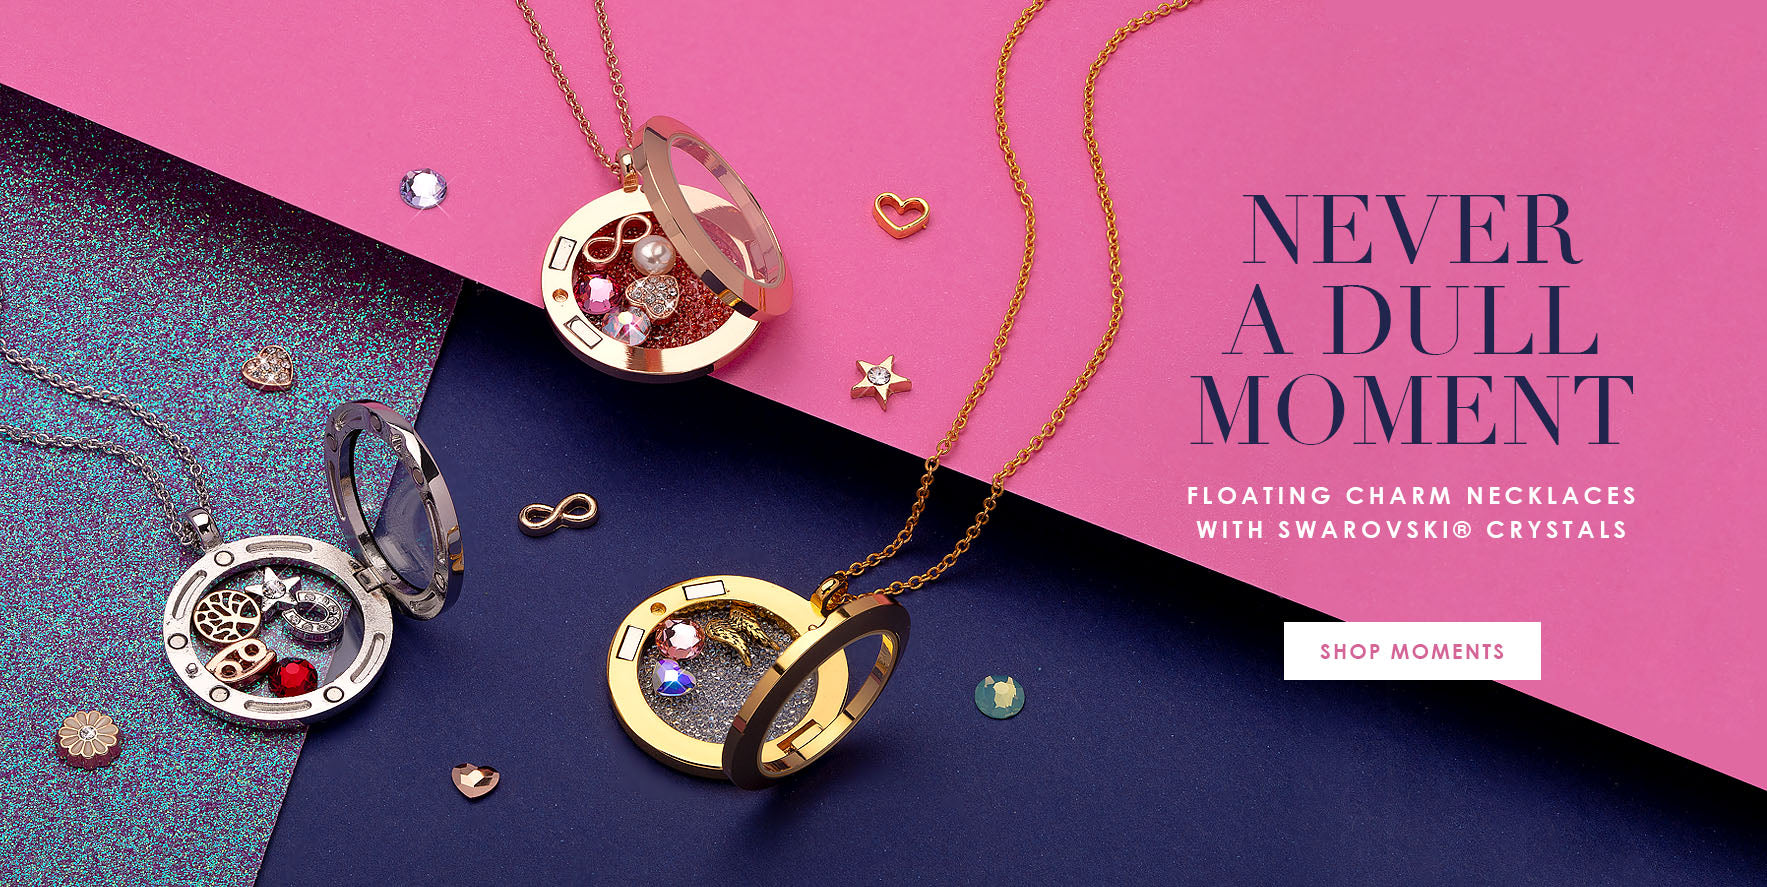 Never A Dull Moment: Shop Floating Charm Necklaces